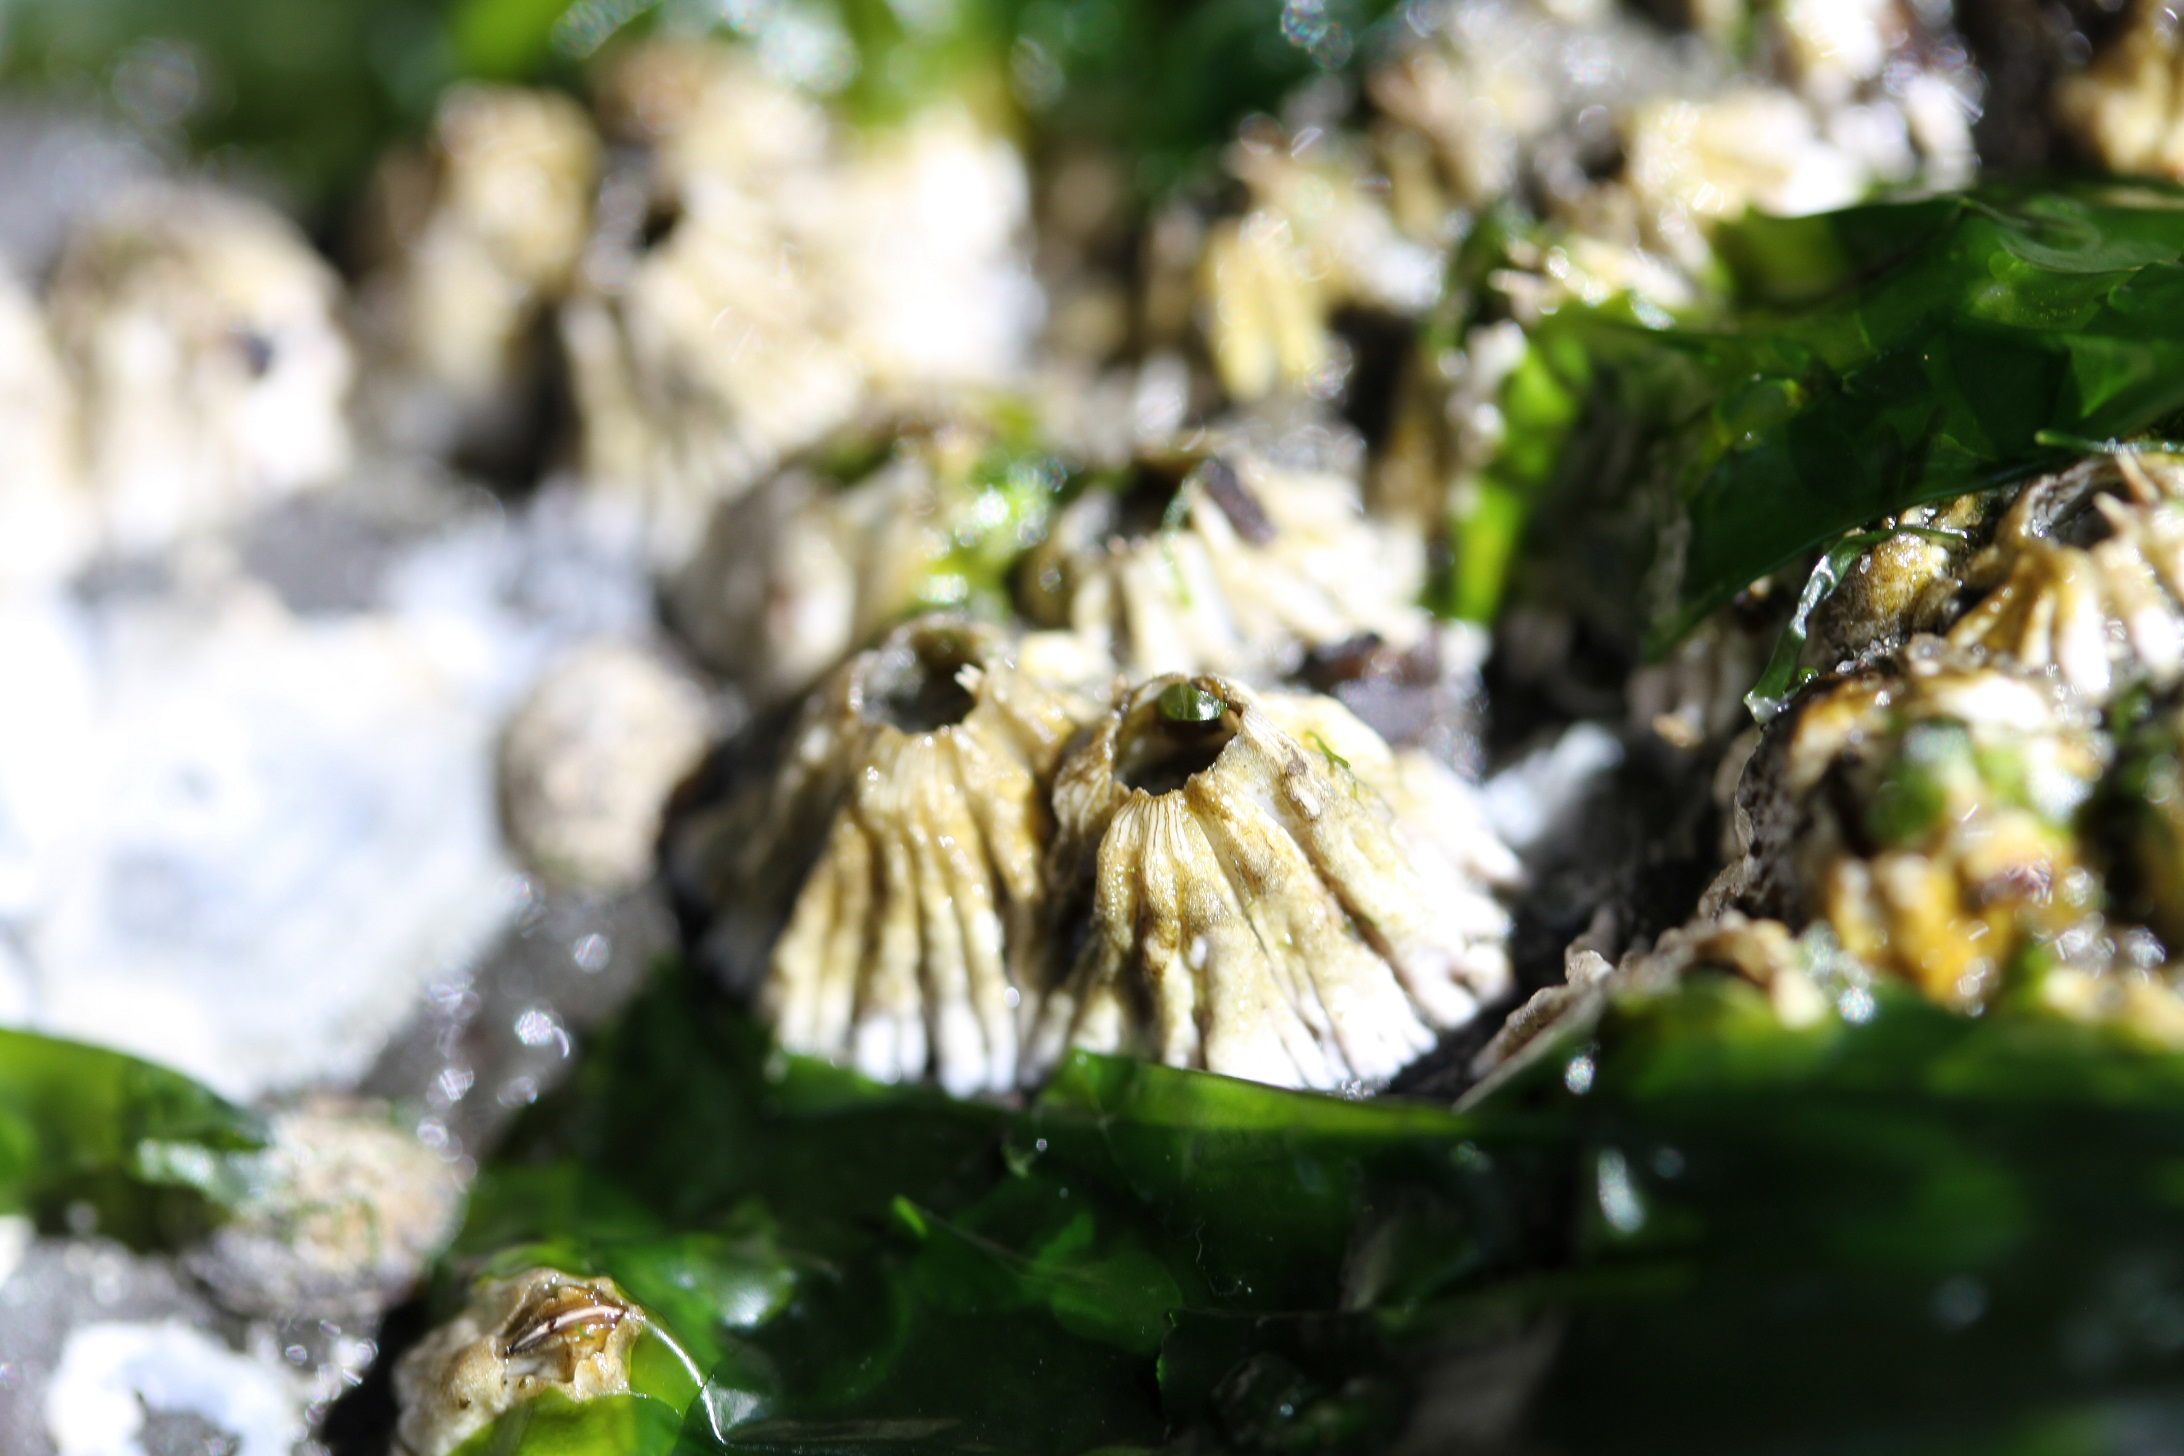 Barnacles on the beach surrounded by kelp